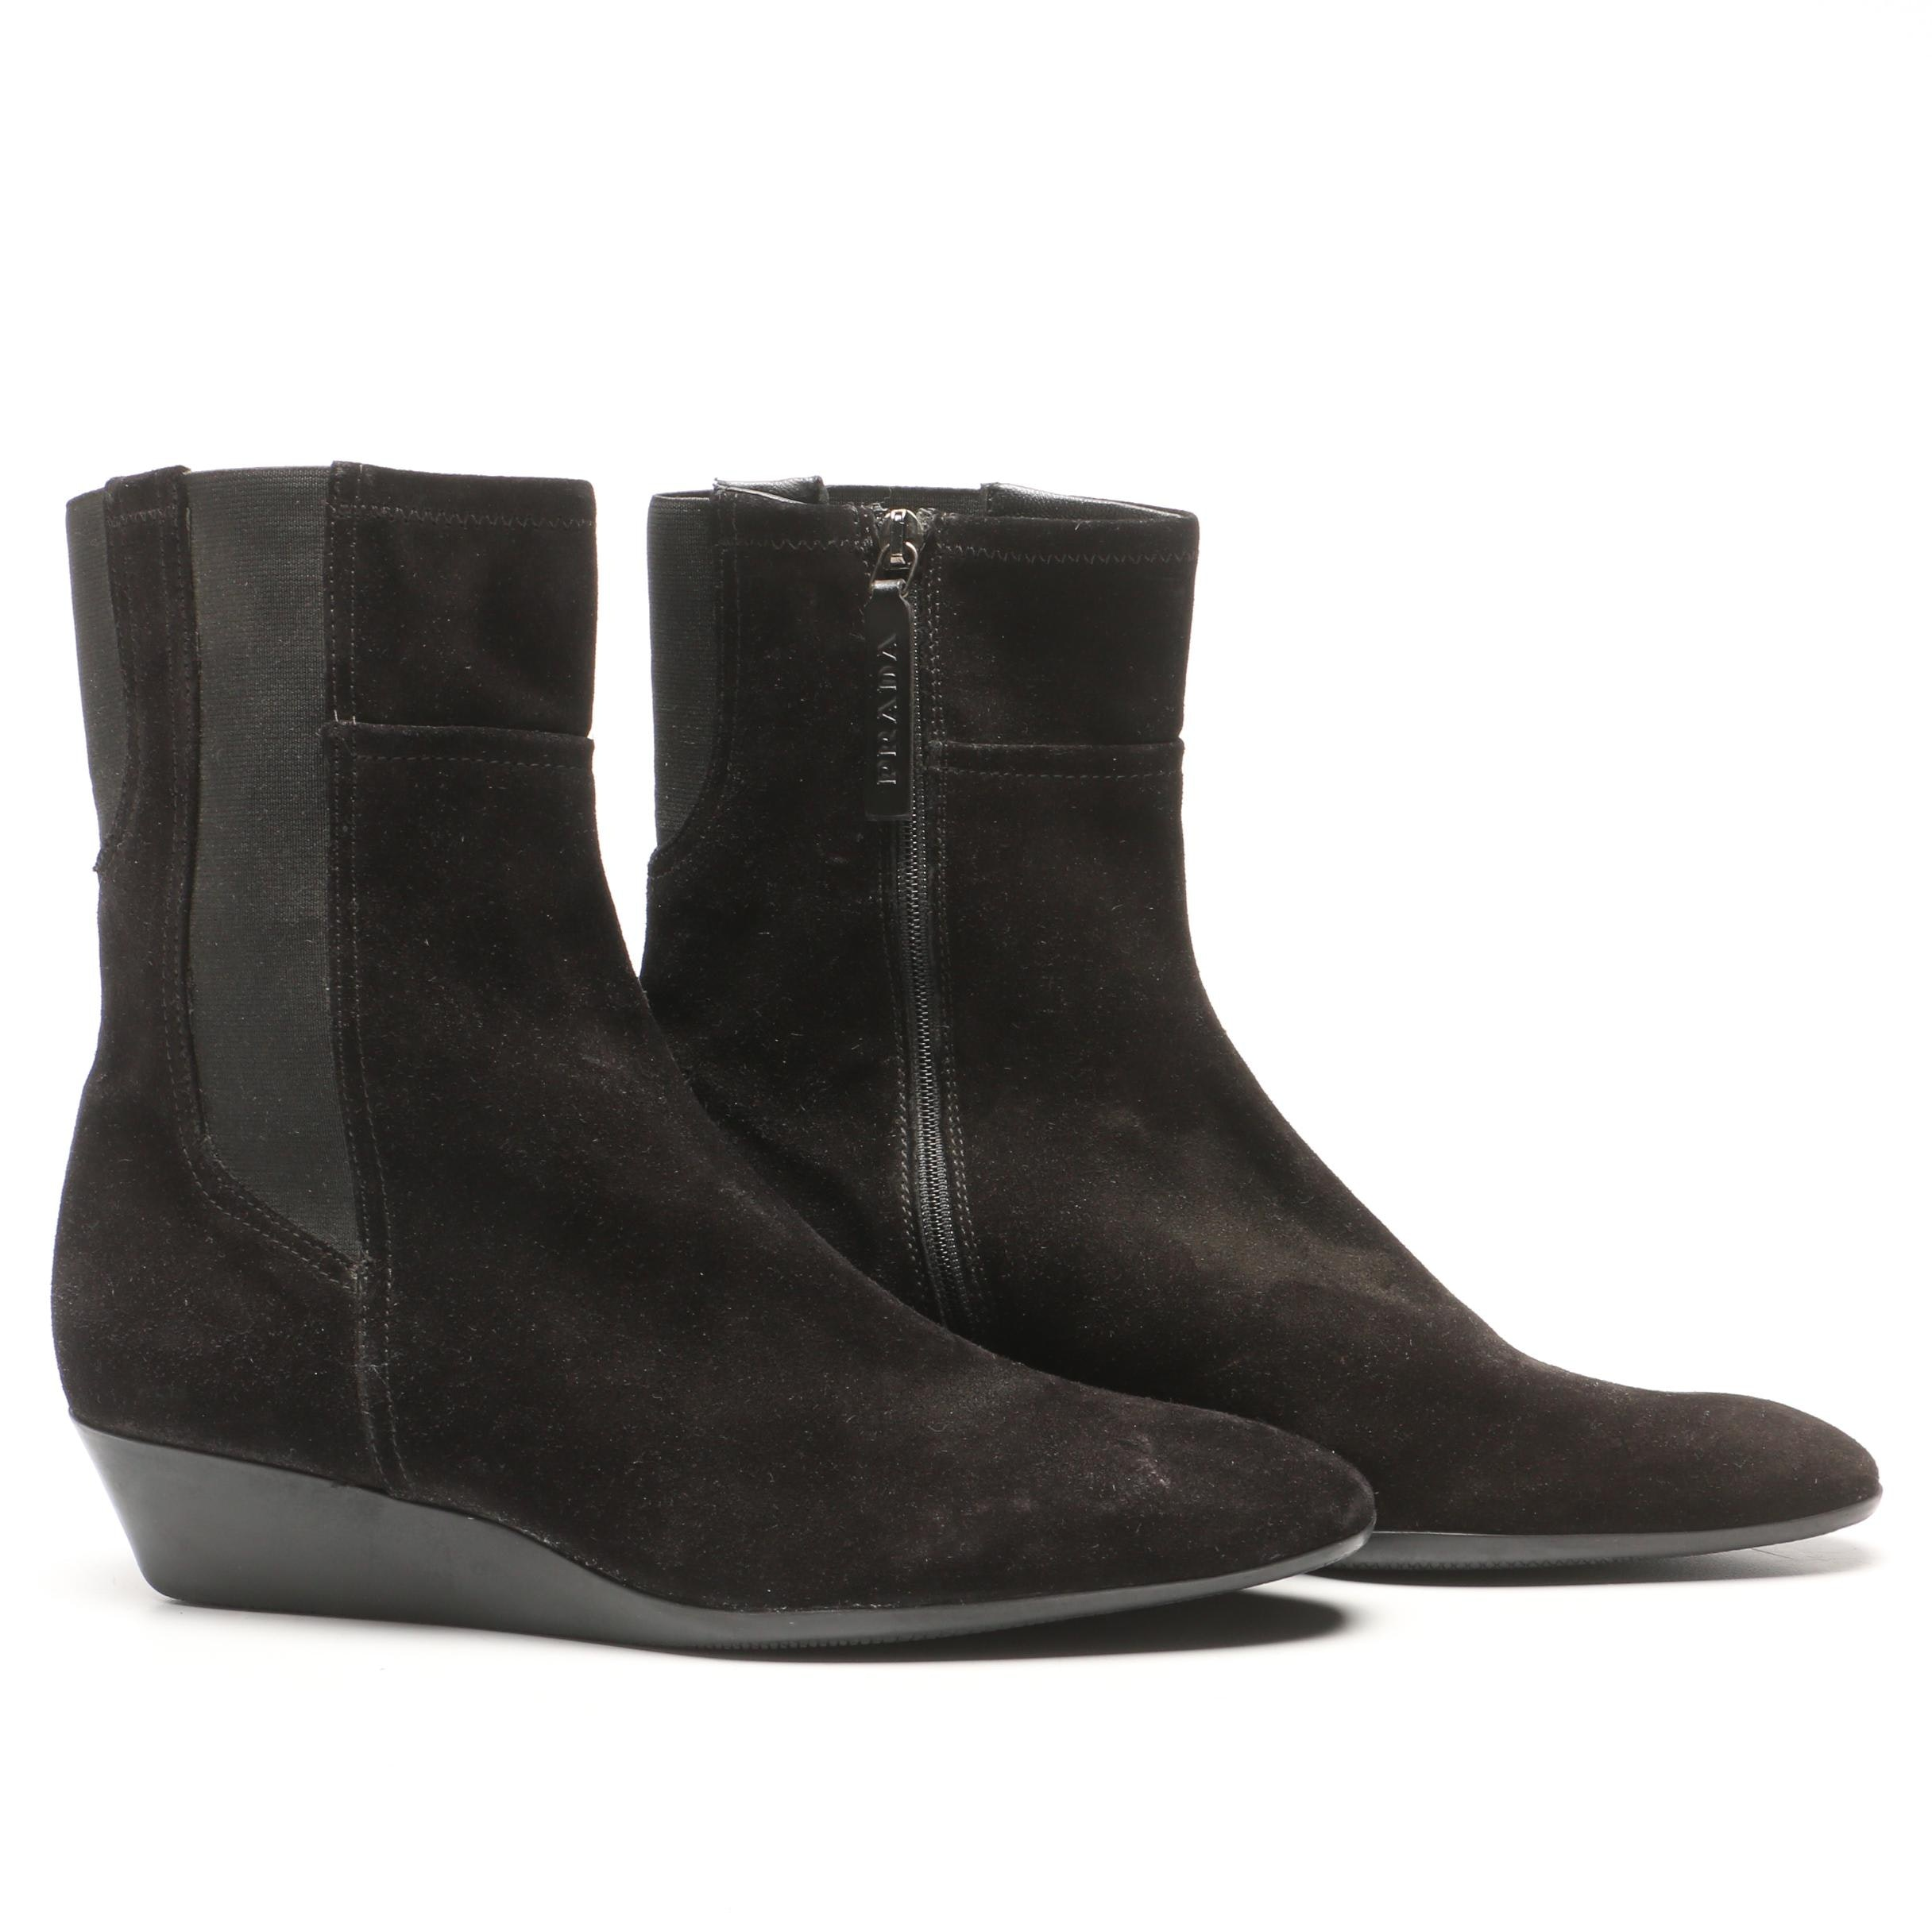 Prada Black Suede Wedge Boots, Made in Italy